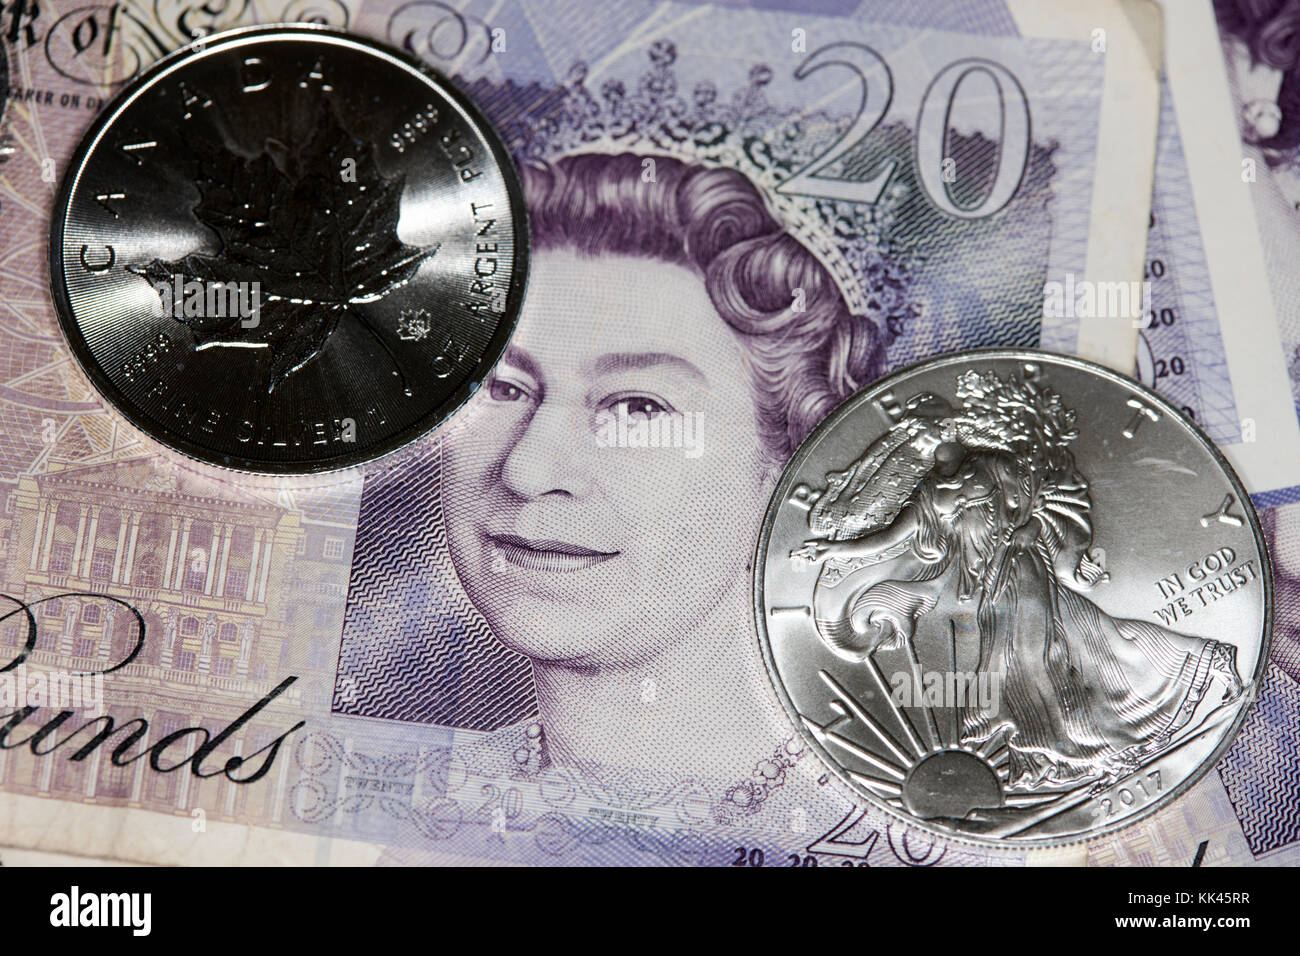 1oz silver bullion coins and british pounds - Stock Image